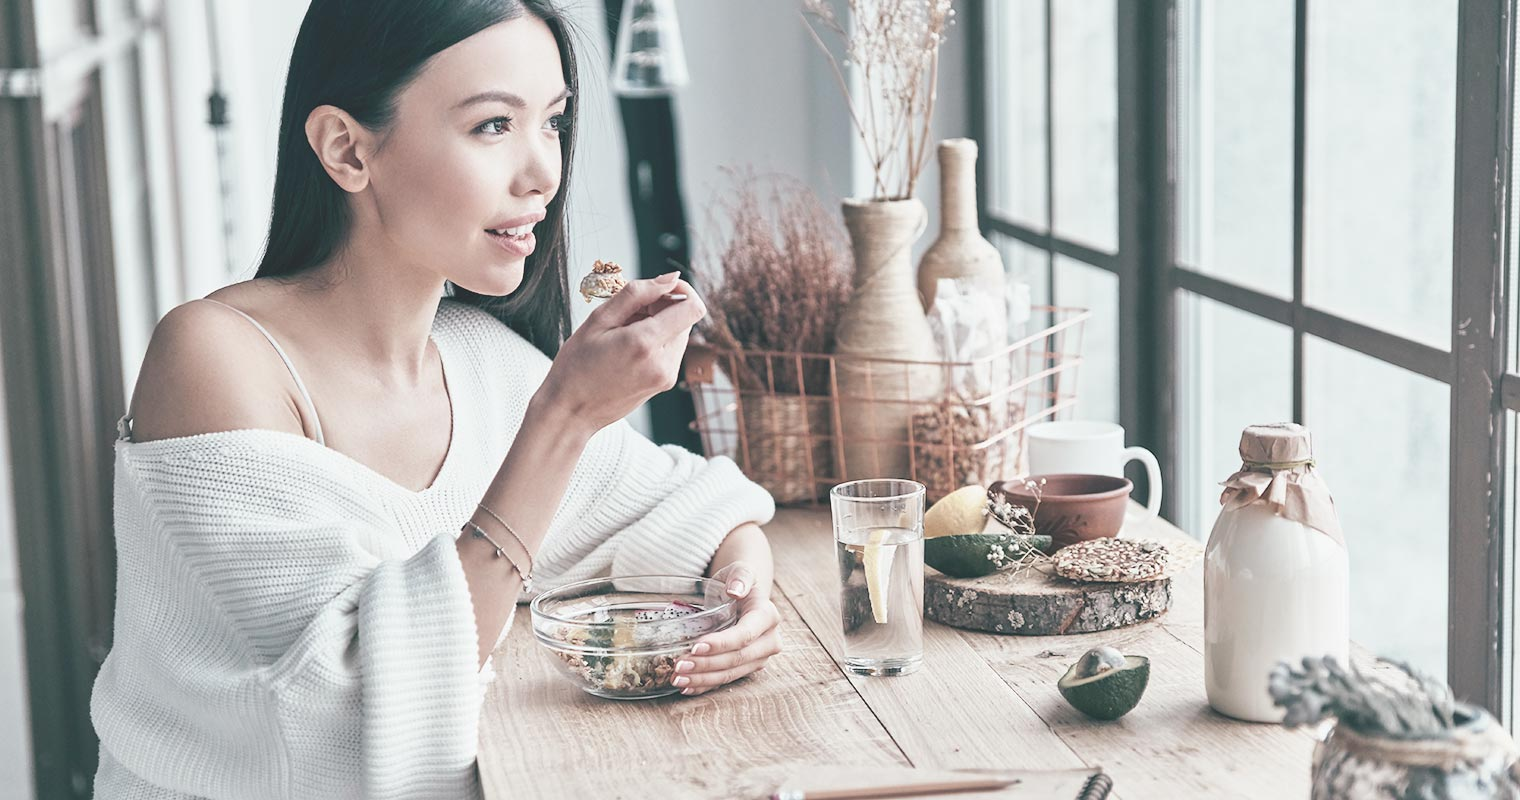 By eating well, you will be able to achieve clearer, healthier skin.